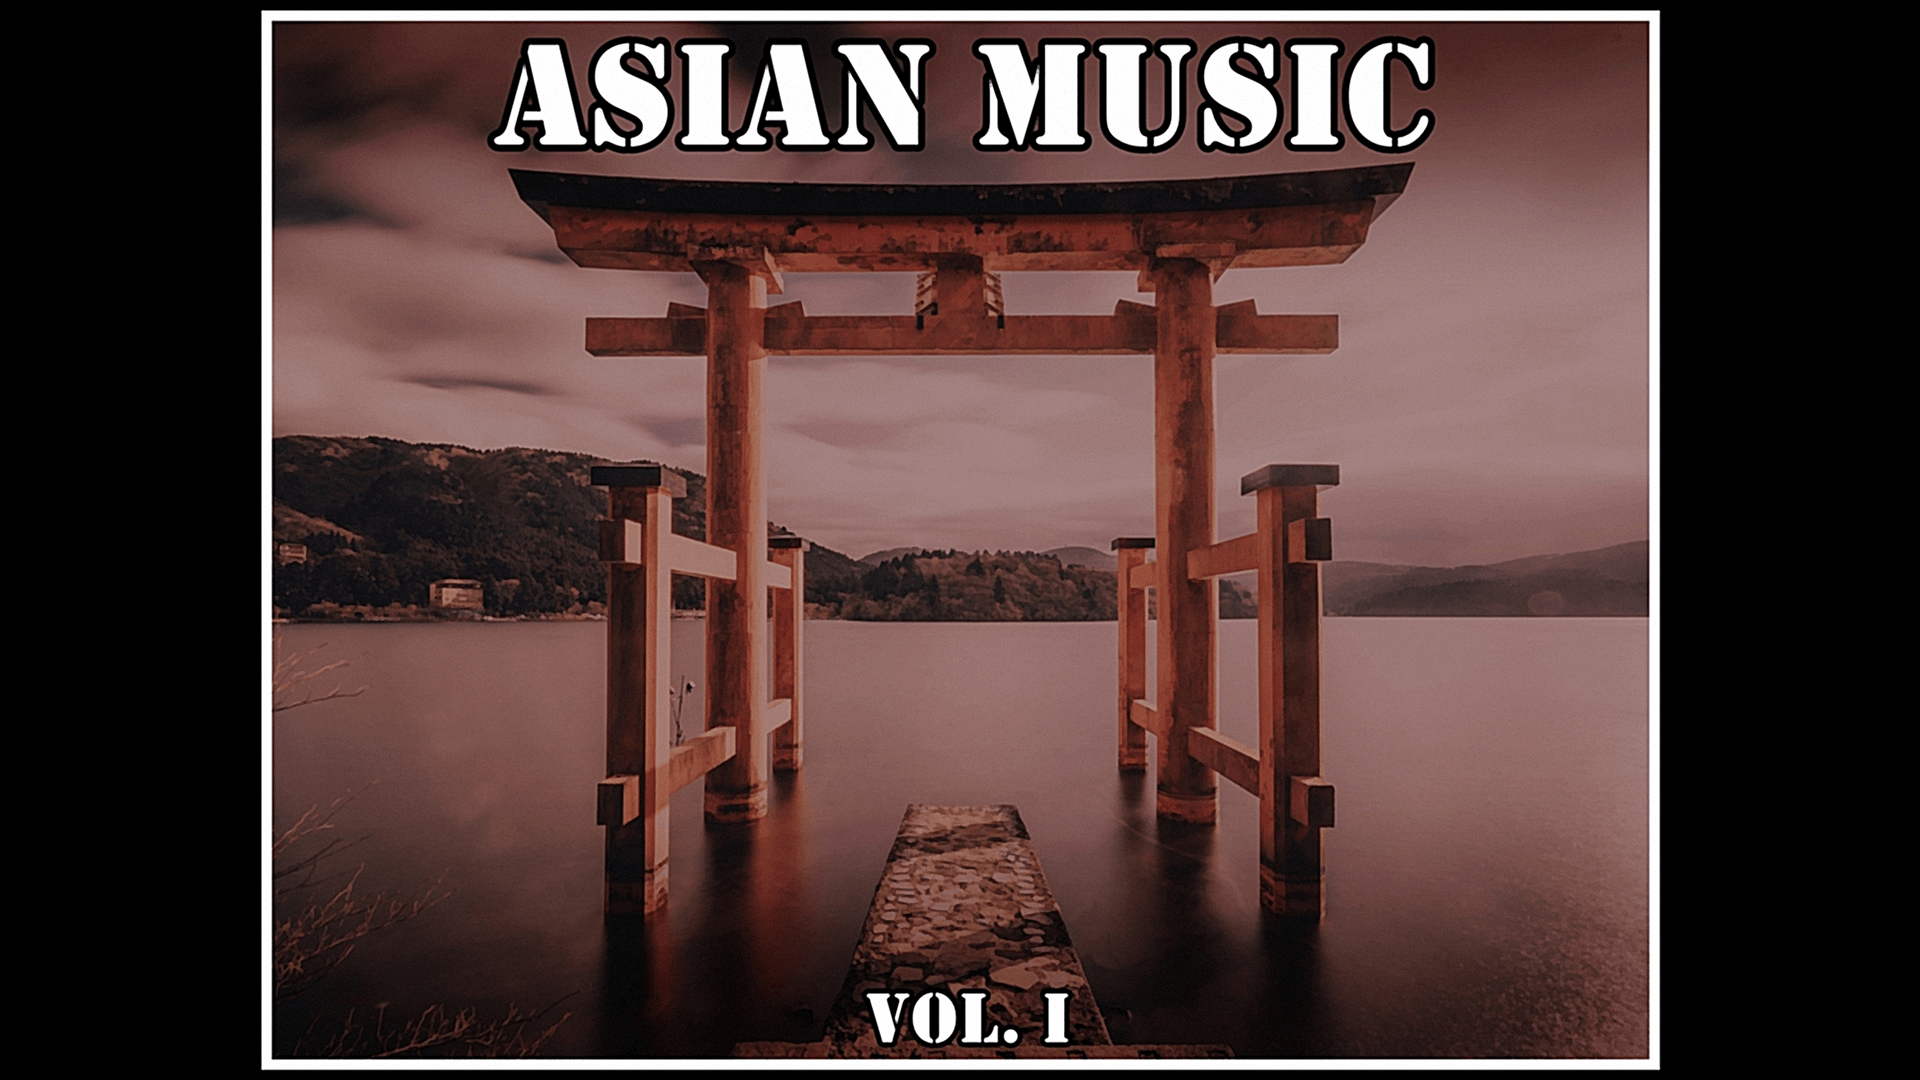 Will know, asian nation music